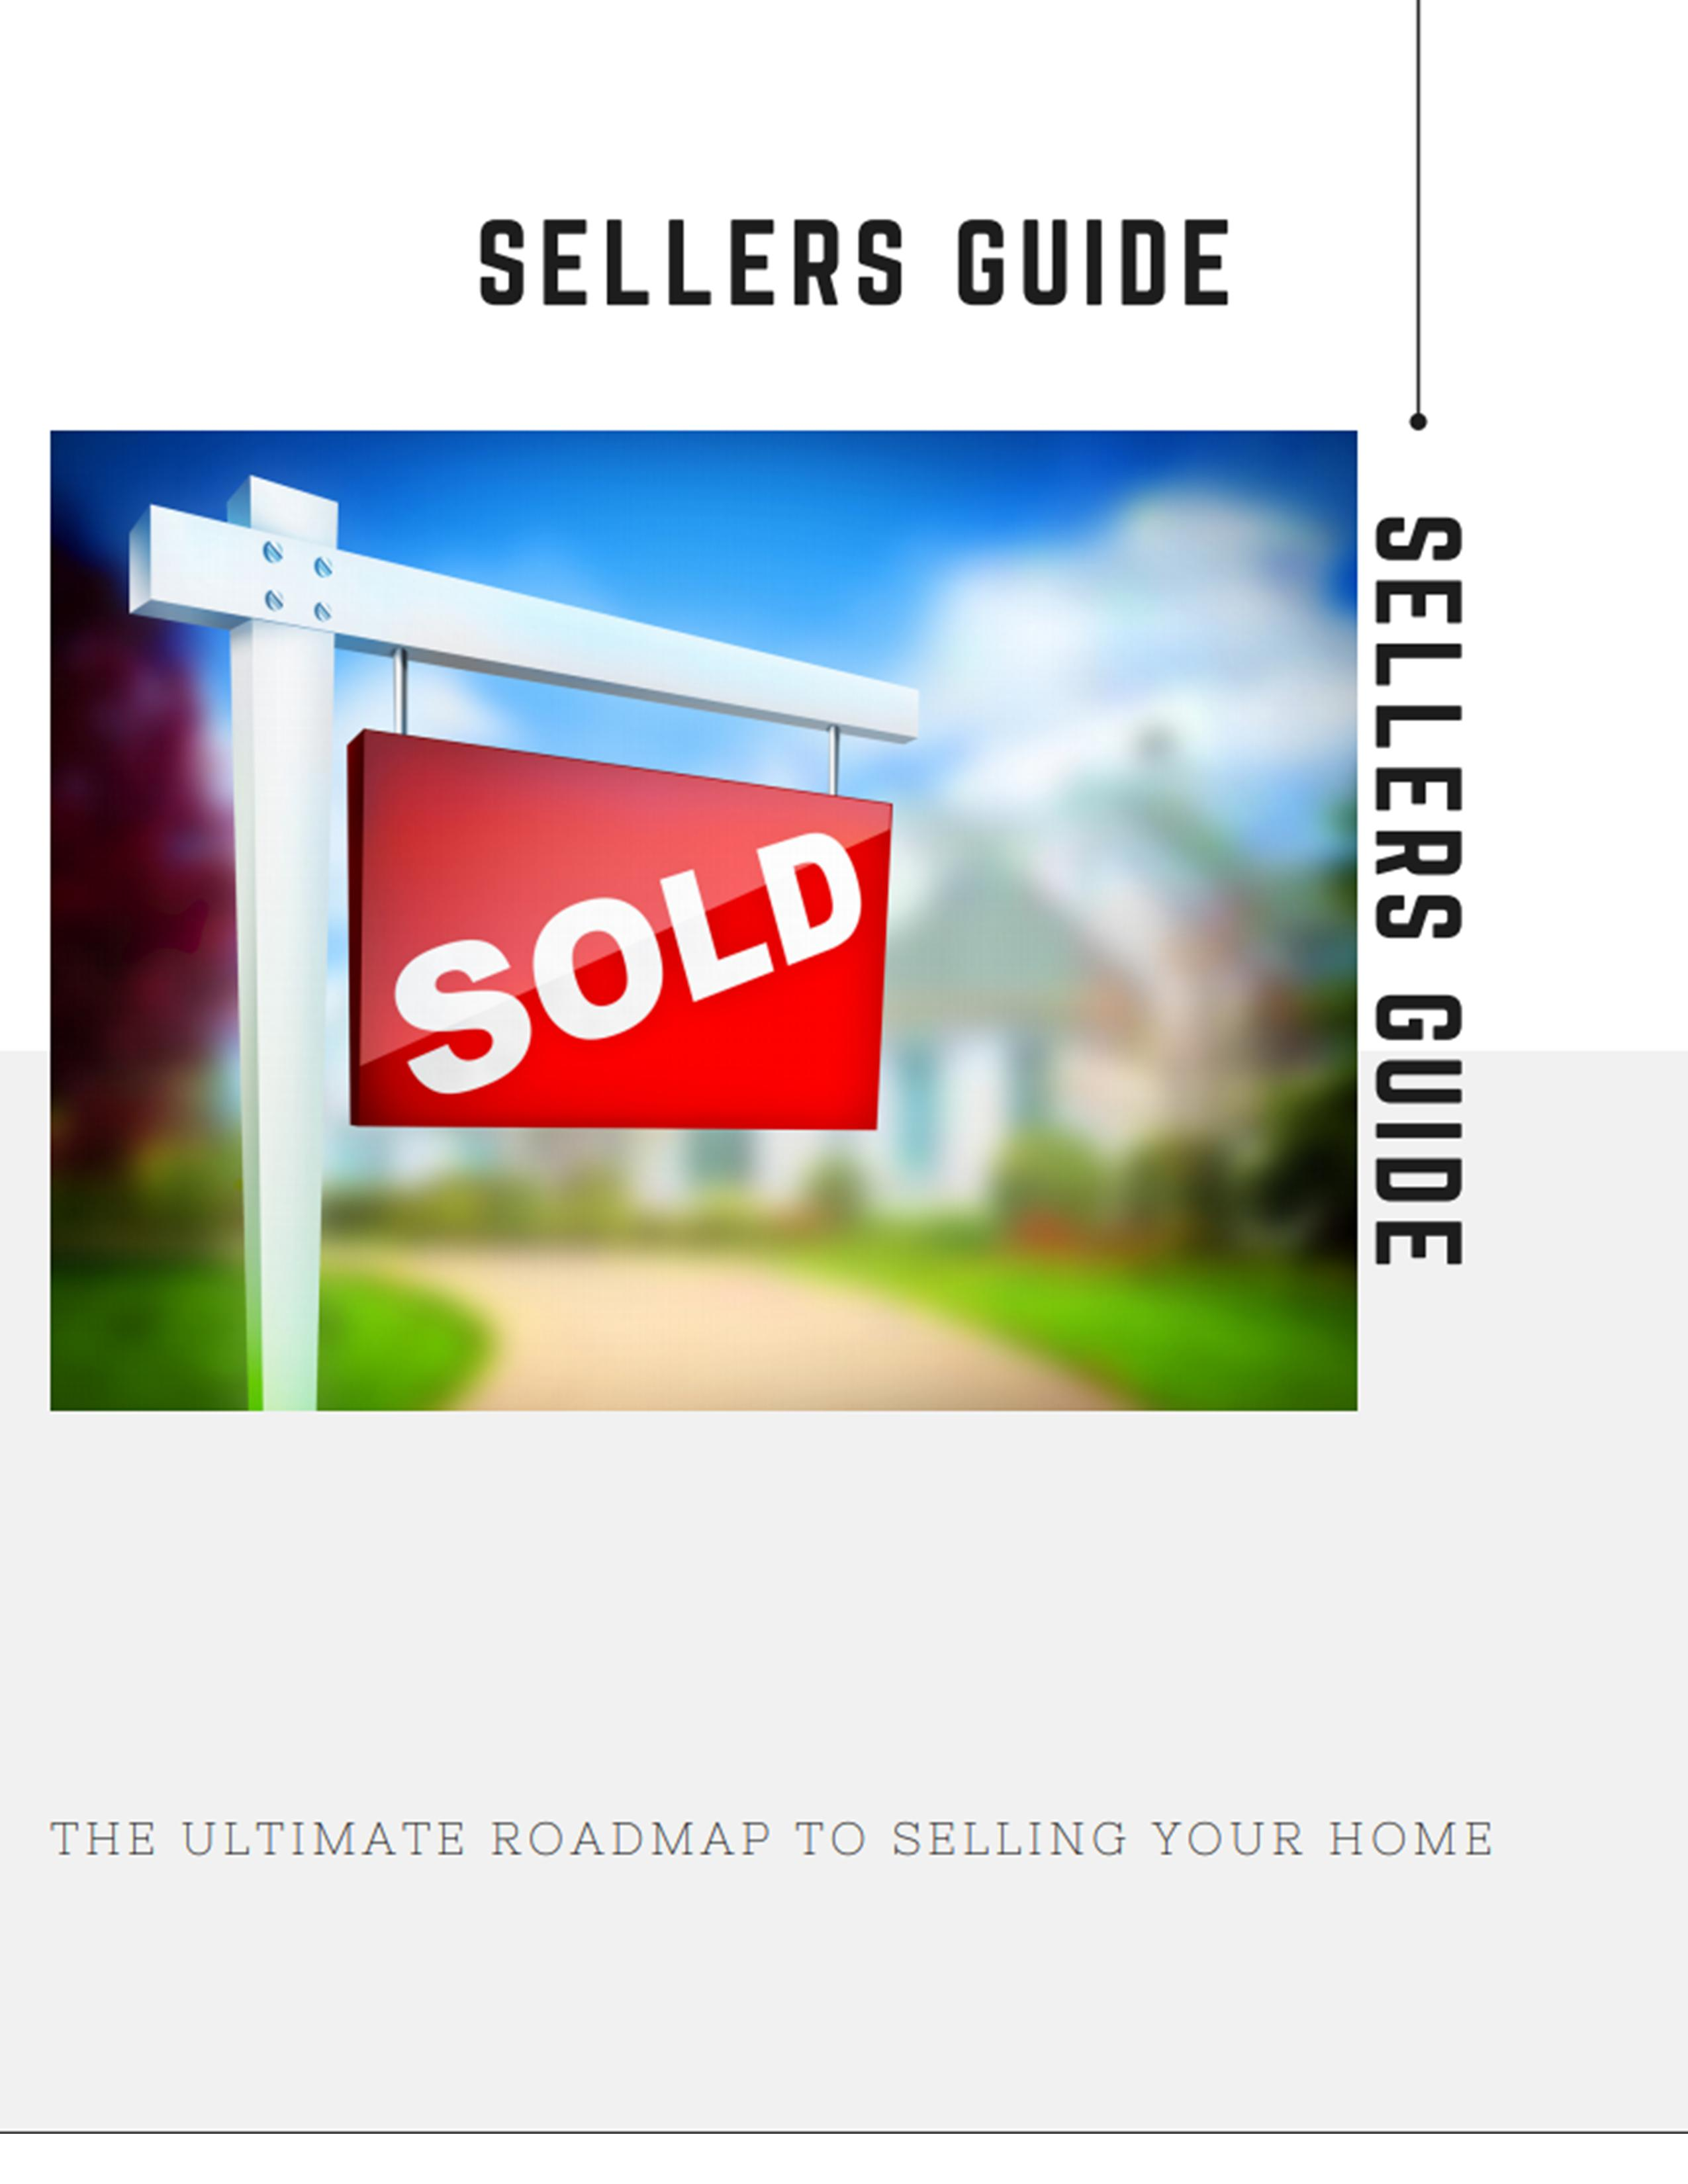 Home Sellers Guide Front cover- full colour.jpg